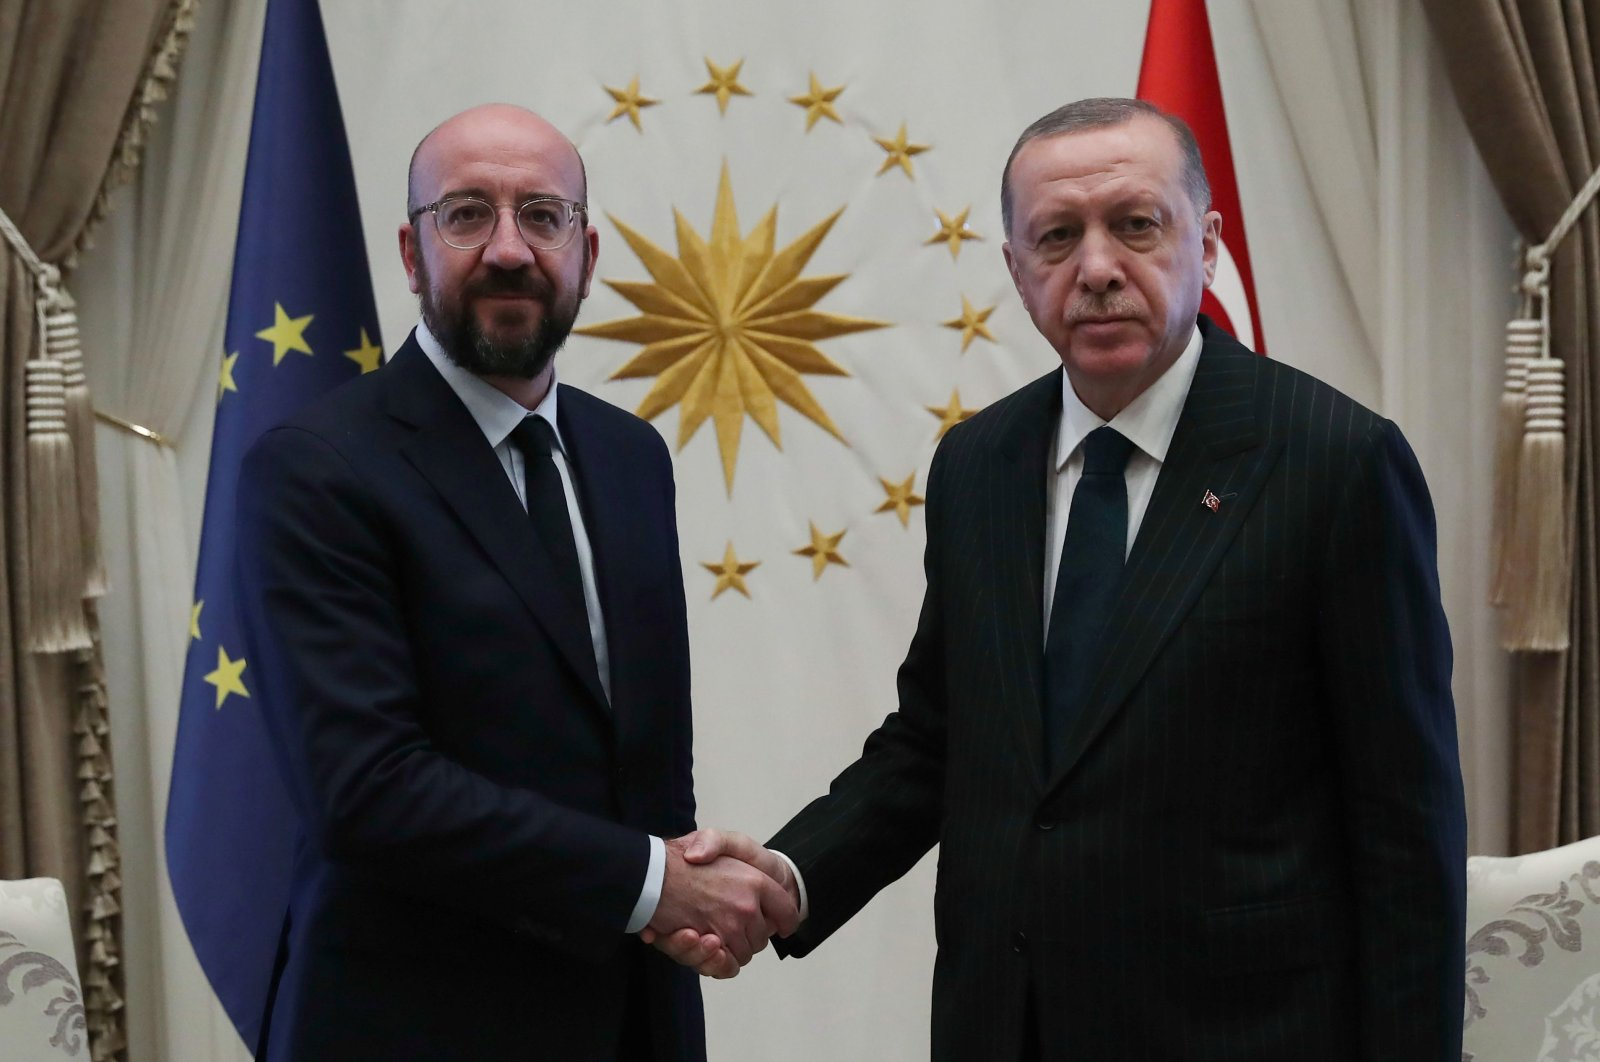 President Recep Tayyip Erdoğan (R) shaking hands with European Council's President Charles Michel (L) at the Presidential Complex in Ankara, on March 4, 2020. (AFP Photo)